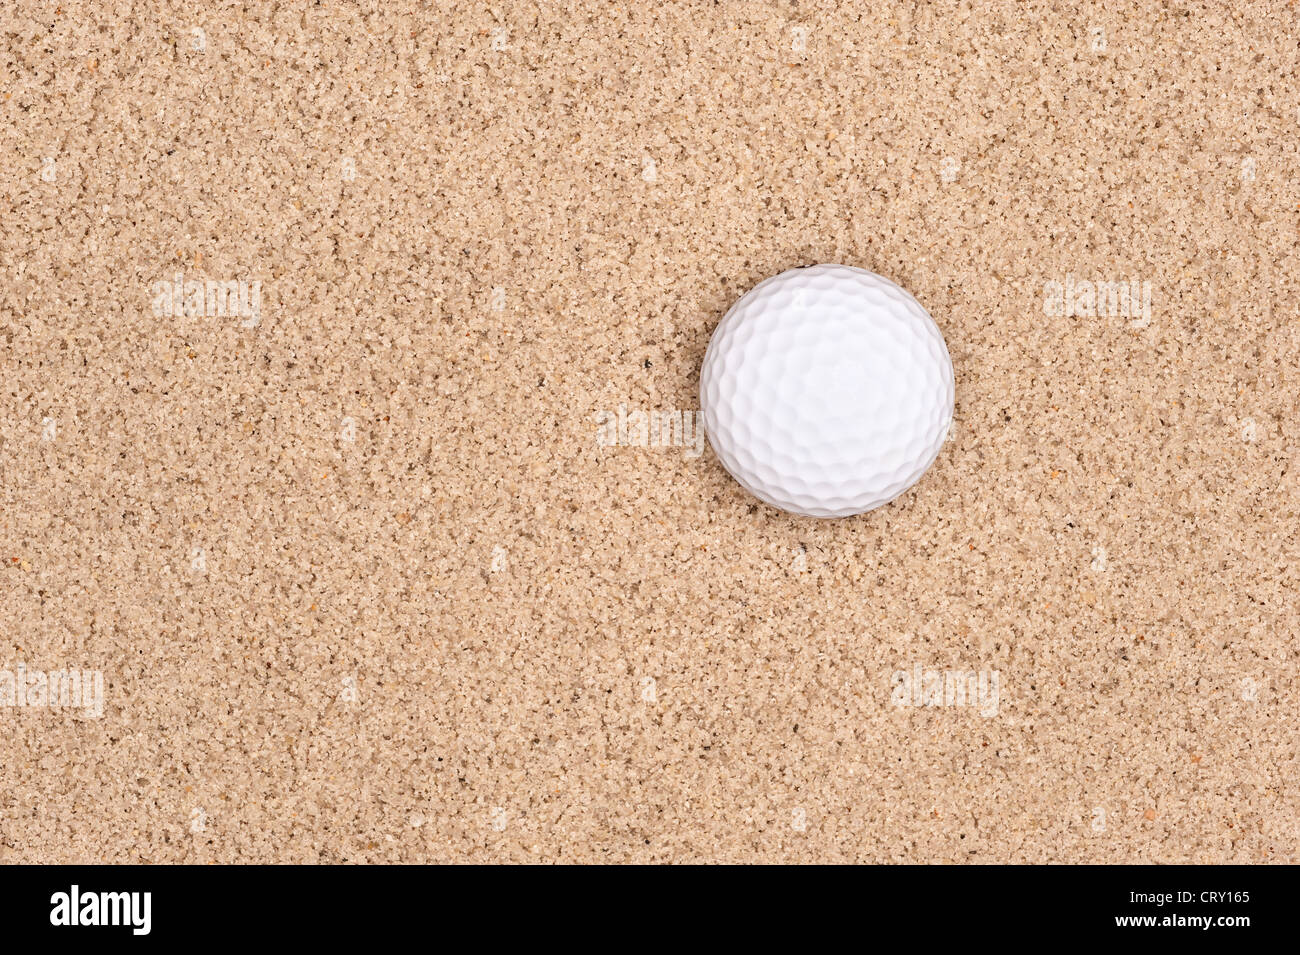 A lone golf ball in a sand trap looking top down with plenty of room for placement of copy. - Stock Image